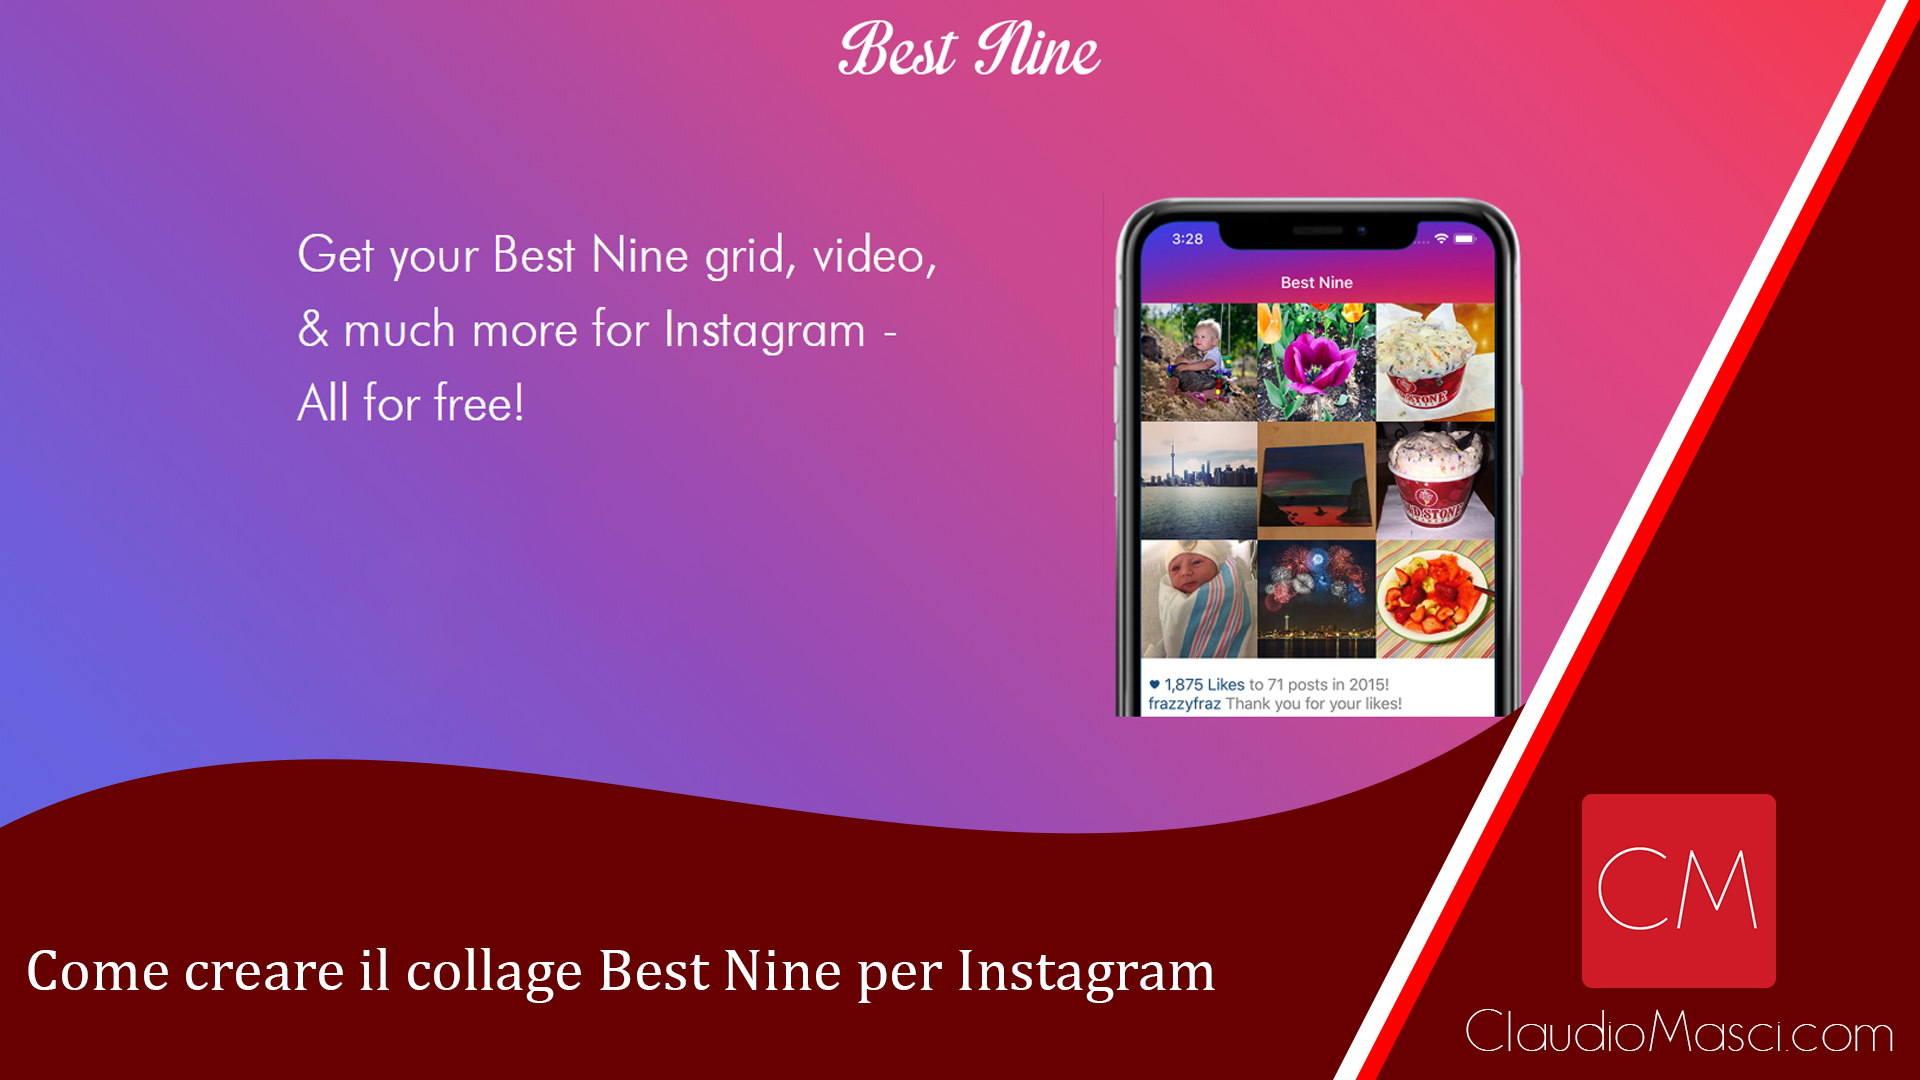 Come creare il collage Best Nine per Instagram